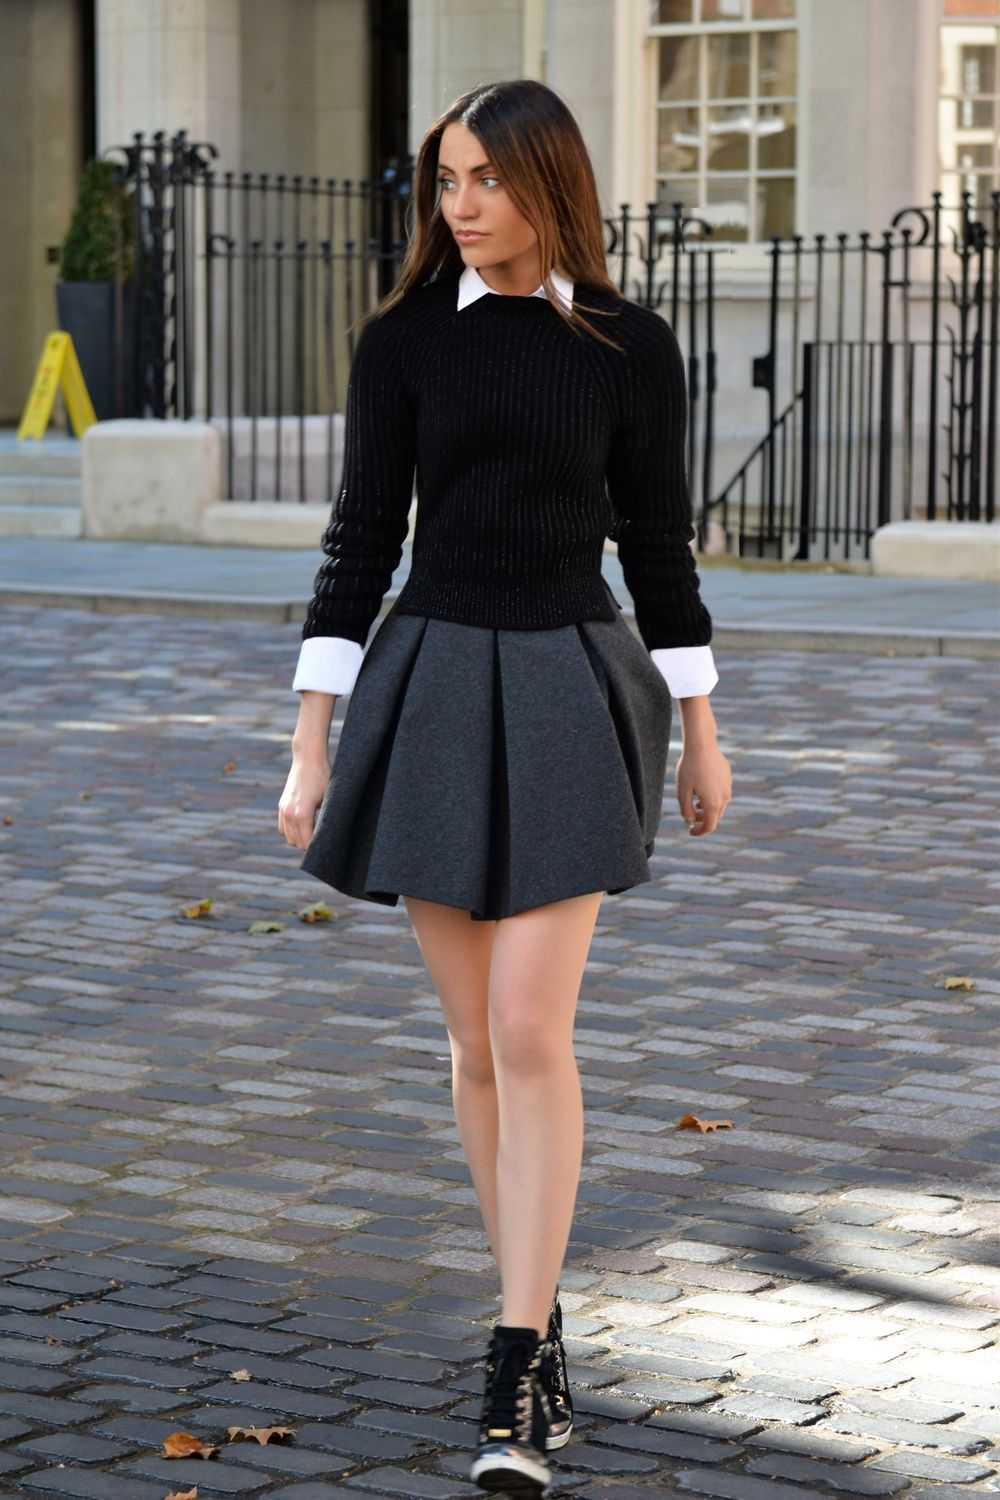 Back to school blair waldorf style uniforms trends by maureen sophie